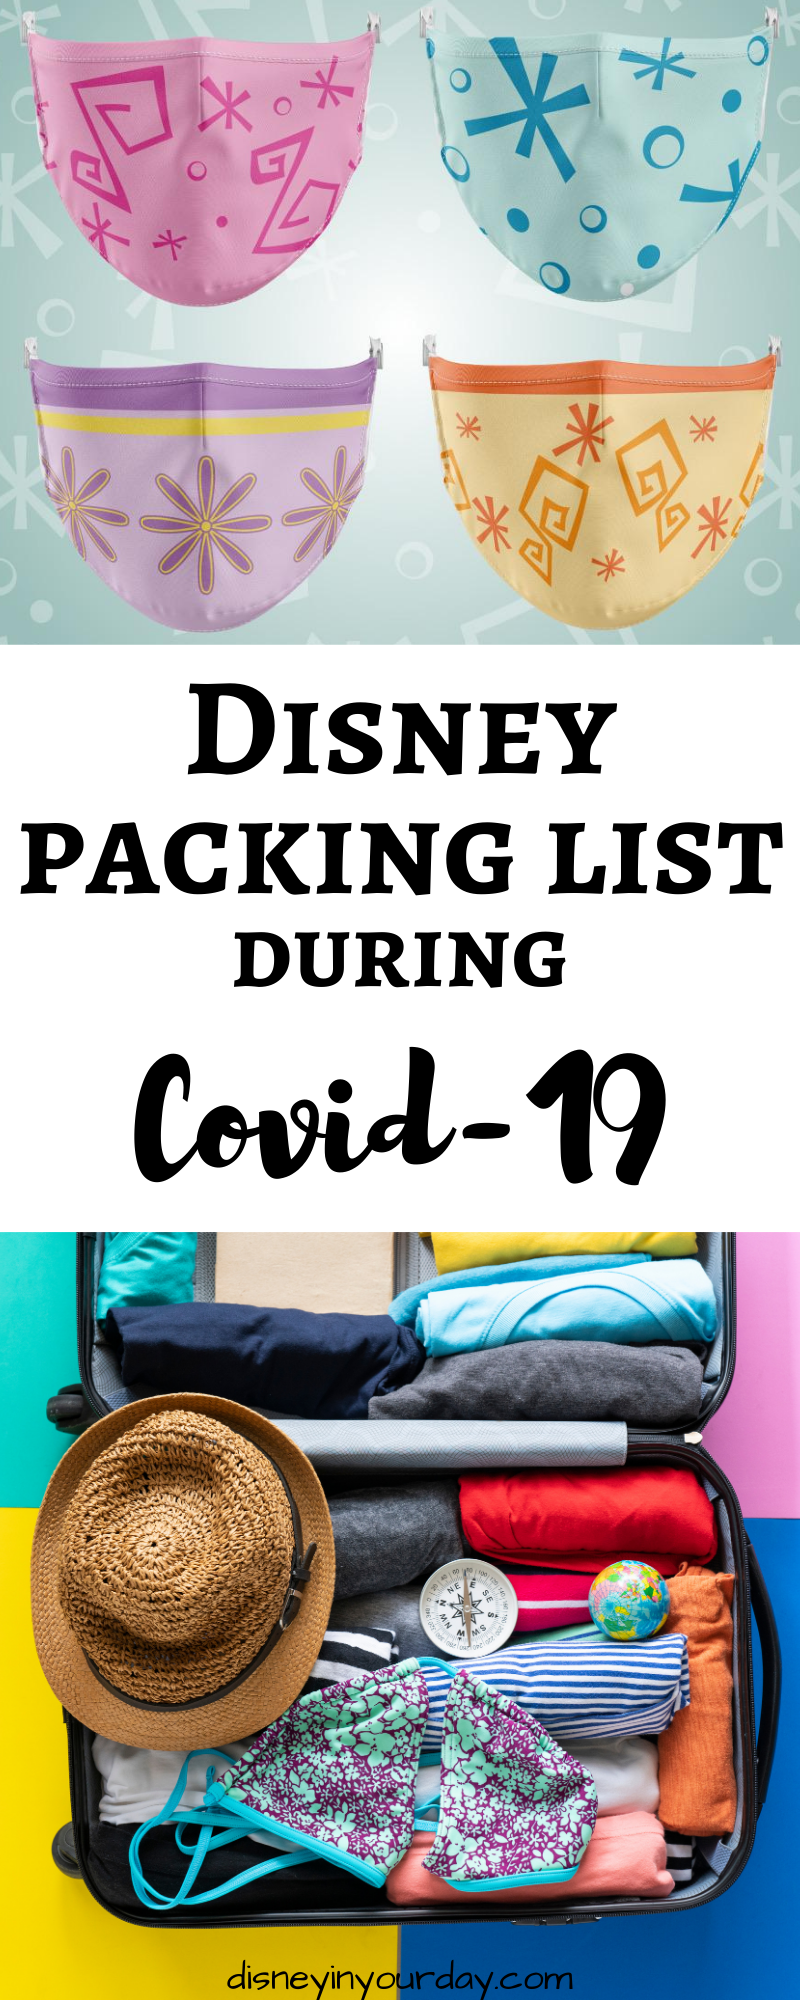 Disney packing list during COVID-19